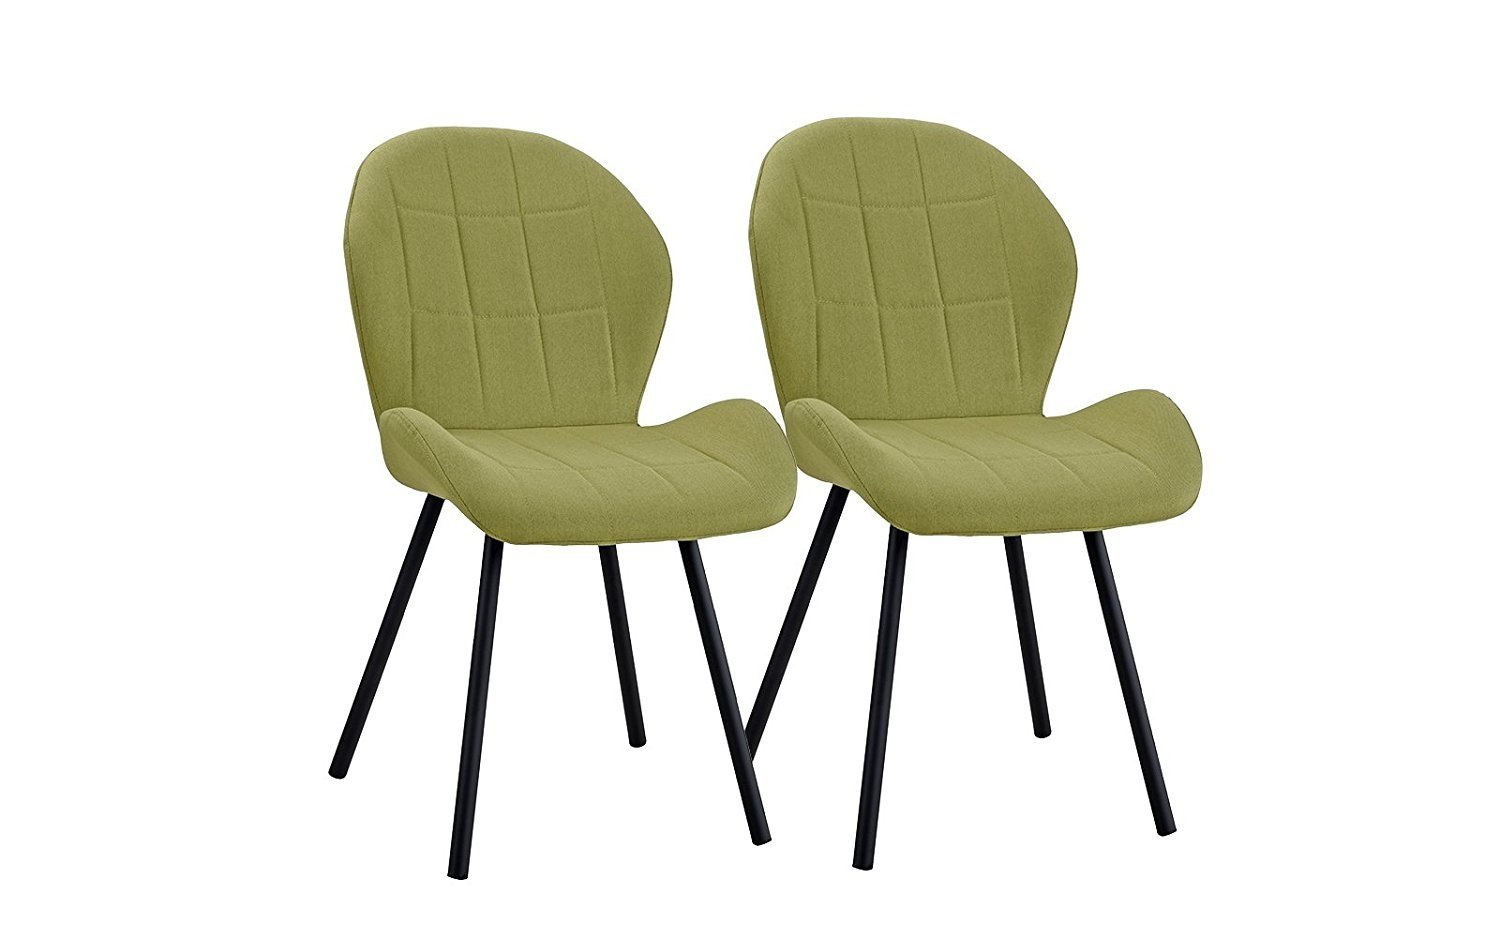 Details About Set Of 2 Dining Chairs Cushion Accent Chair For Kitchen Office Living Room Green